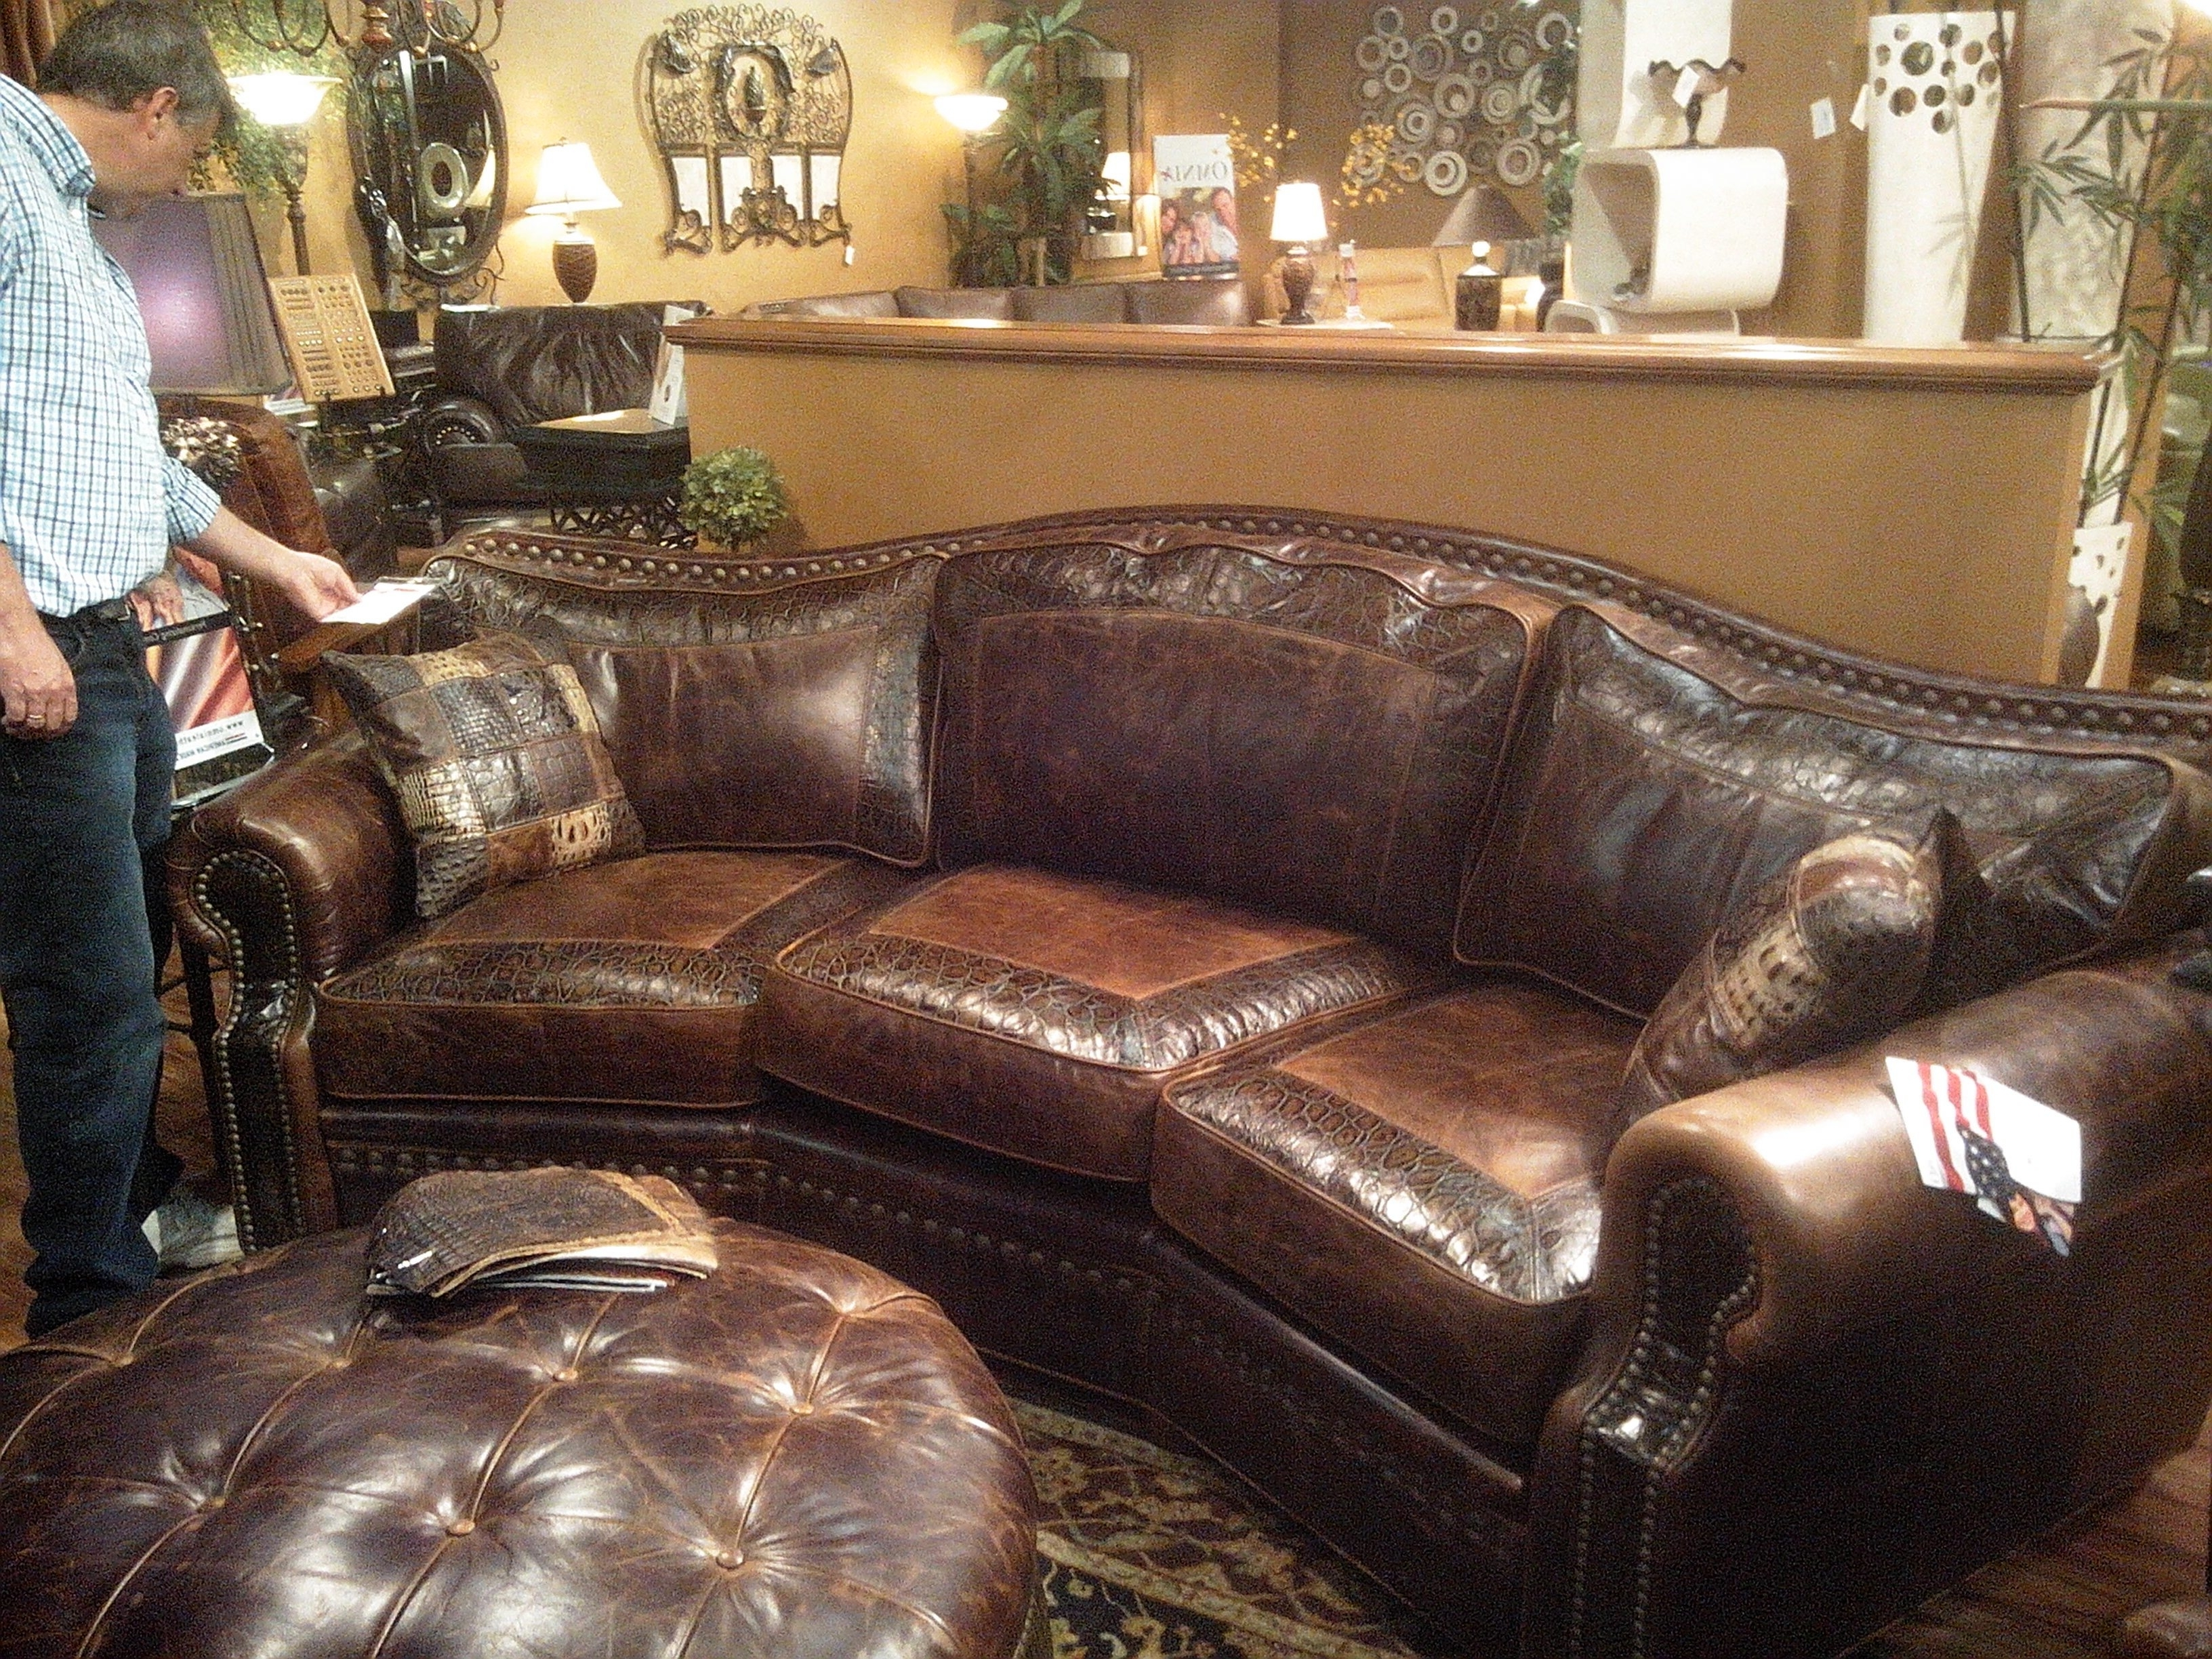 Omnia Leather Tucson Seat Conversation Couch Saw It At Recliners In Best And Newest Tucson Sectional Sofas (View 20 of 20)